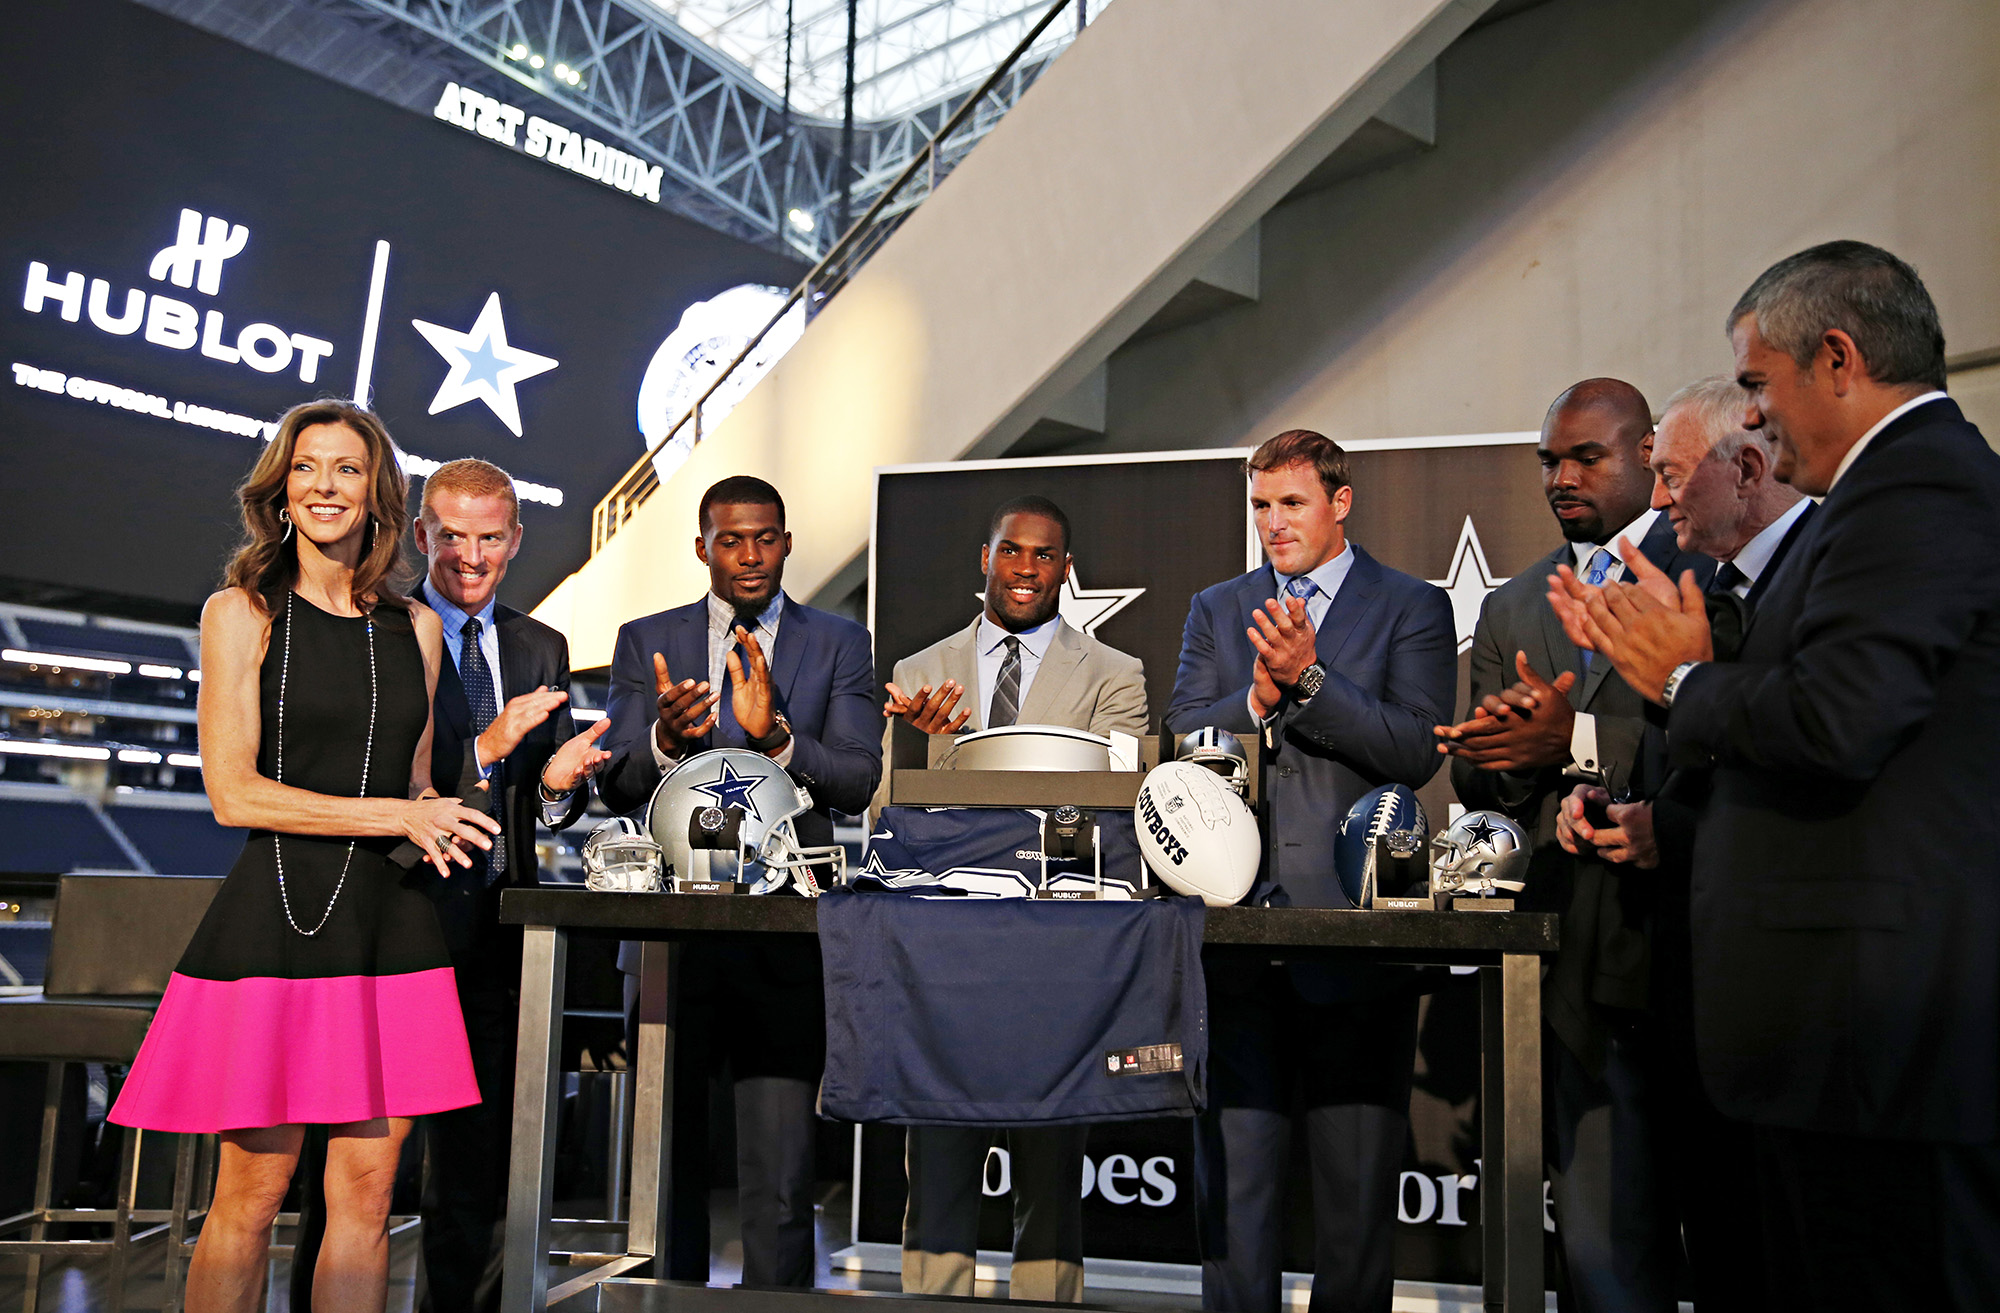 (From left) Charlotte Jones Anderson, Jason Garrett, Dez Bryant, DeMarco Murray, Jason Witten, Tyron Smith, Jerry Jones and Ricardo Guadalupe take part in a Hublot and Dallas Cowboys partnership/watch launch party Monday, August 25, 2014 at AT&T Stadium in Arlington, Texas.